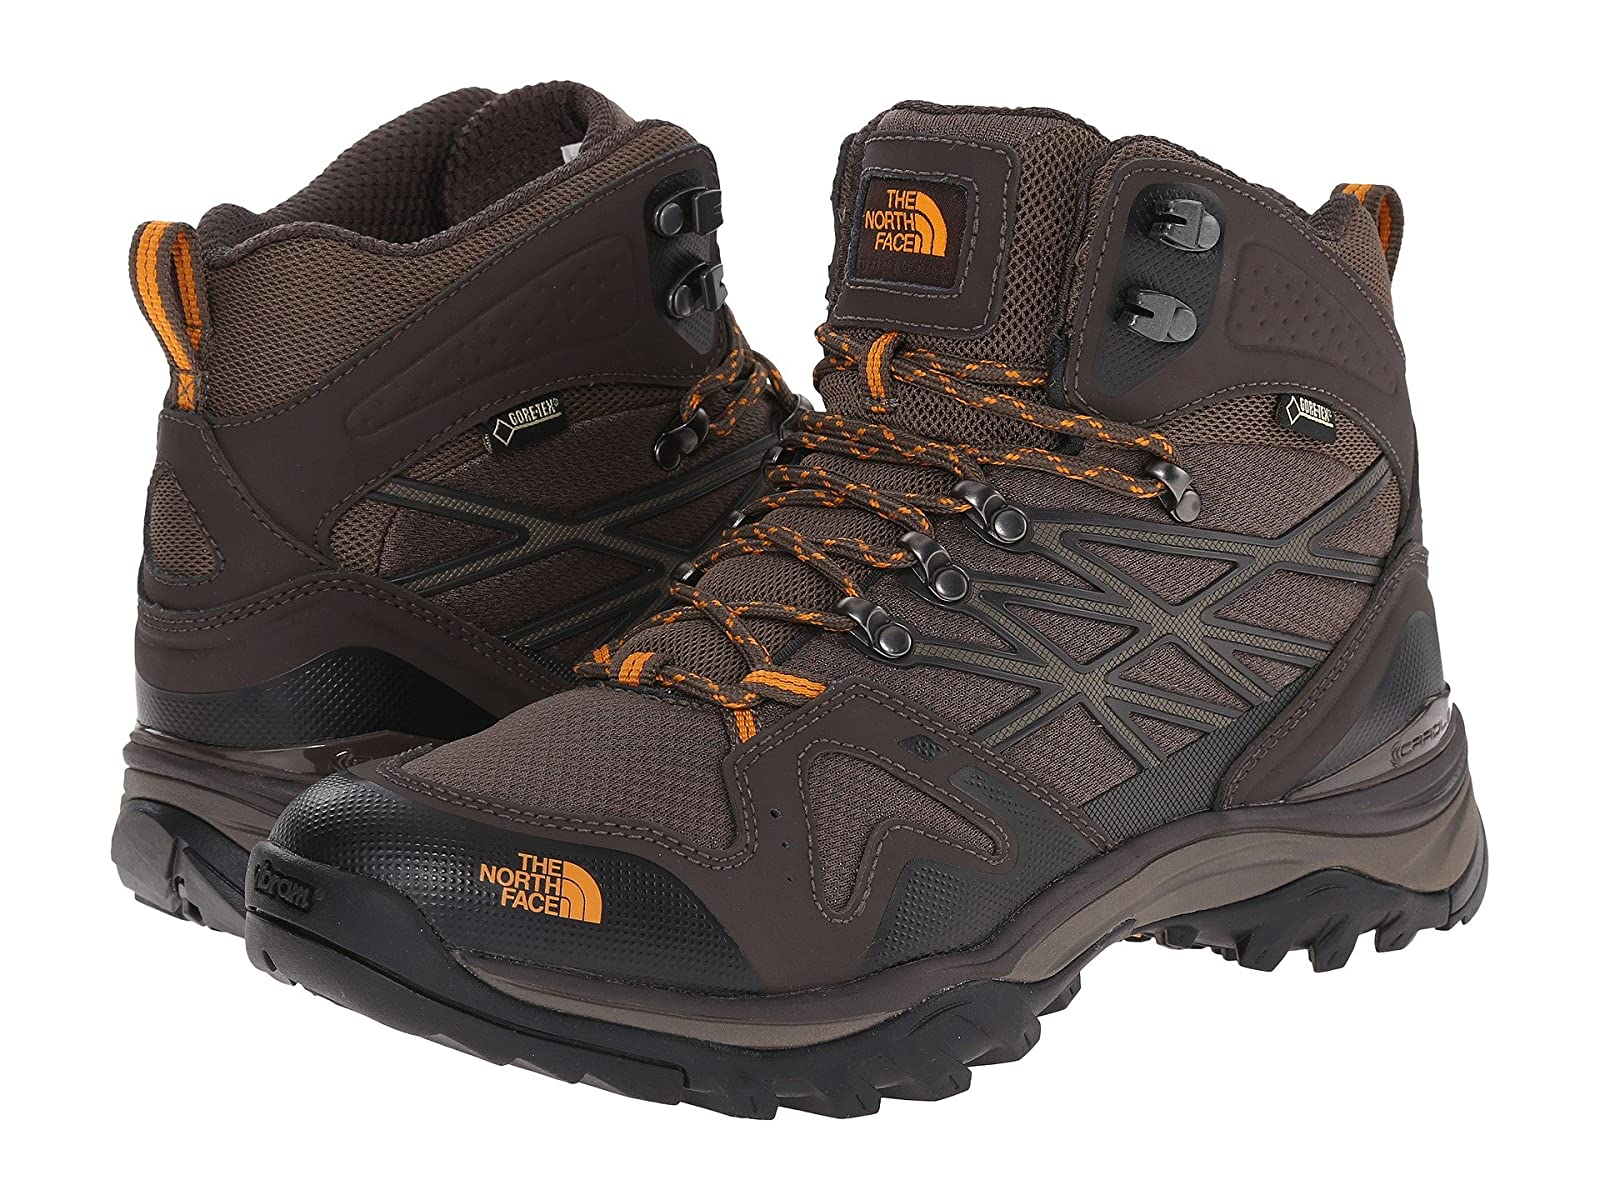 The North Face Hedgehog Fastpack Mid GTX®Cheap and distinctive eye-catching shoes